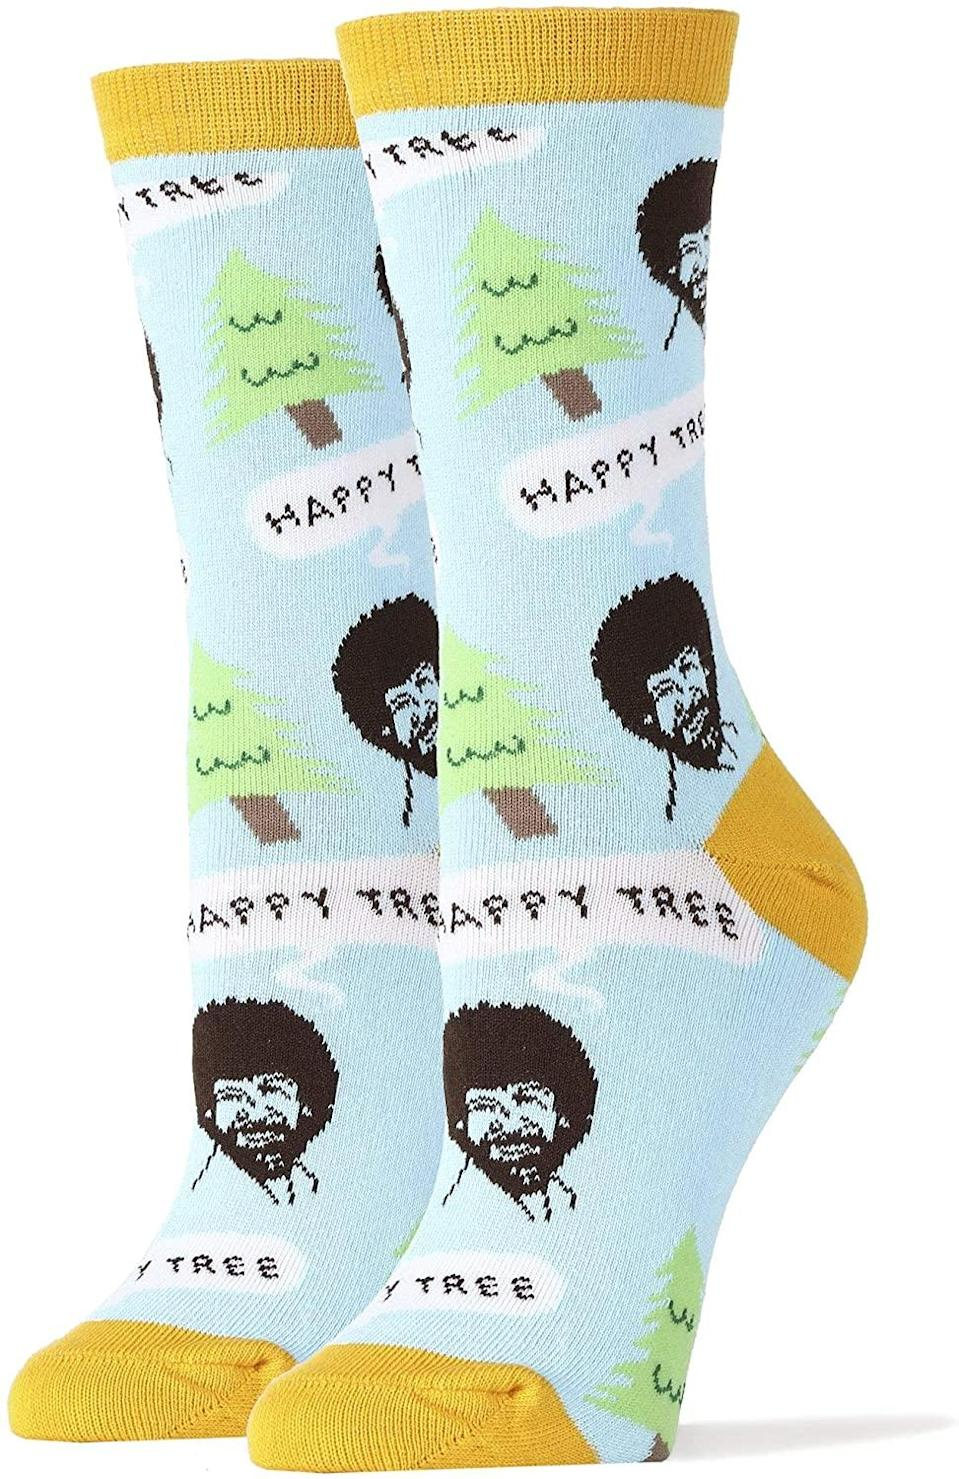 """<h2>Bob Ross Novelty Crew Socks</h2><br><strong>What are they? </strong>Comfy crew socks adorned with the smiling likeness of the pioneering PBS painter<br><br><strong>What's the hottest take? </strong>""""bob ross bob ross bob ross bob ross bob ross bob ross bob ross bob ross bob ross bob ross bob ross bob ross bob ross bob ross bob ross,"""" wrote reviewer Alexis. """"bob ross bob ross bob ross bob ross bob ross bob ross bob ross bob ross bob ross bob ross bob ross bob ross bob ross bob ross bob ross bob ross bob ross bob ross bob ross bob ross bob ross bob ross bob ross bob ross bob ross bob ross bob ross bob ross bob ross bob ross bob ross bob ross bob ross bob ross bob ross bob ross bob ross bob ross bob ross bob ross bob ross bob ross bob ross bob ross bob ross bob ross bob ross bob ross bob ross bob ross bob ross,"""" she continued, adding that """"bob ross bob ross bob ross bob ross bob ross bob ross bob ross bob ross bob ross.""""<br><br><strong>oooyeah</strong> Bob Ross Novelty Socks, $, available at <a href=""""https://amzn.to/3s6m520"""" rel=""""nofollow noopener"""" target=""""_blank"""" data-ylk=""""slk:Amazon"""" class=""""link rapid-noclick-resp"""">Amazon</a>"""